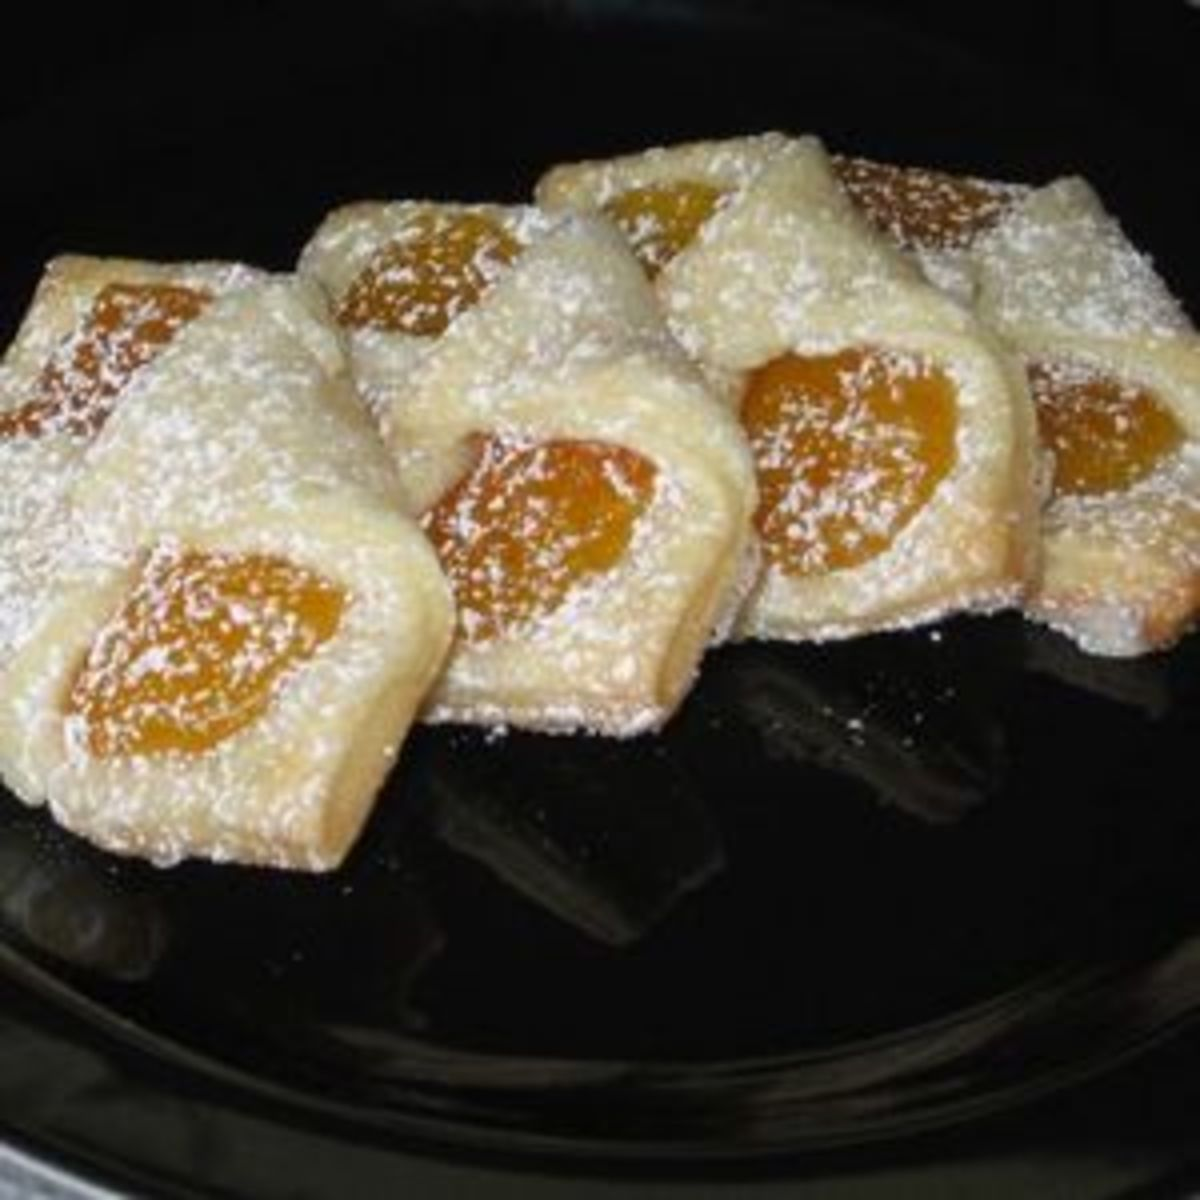 Kolaczki are wonderful butter cookies made with a fruit or cheese filling.